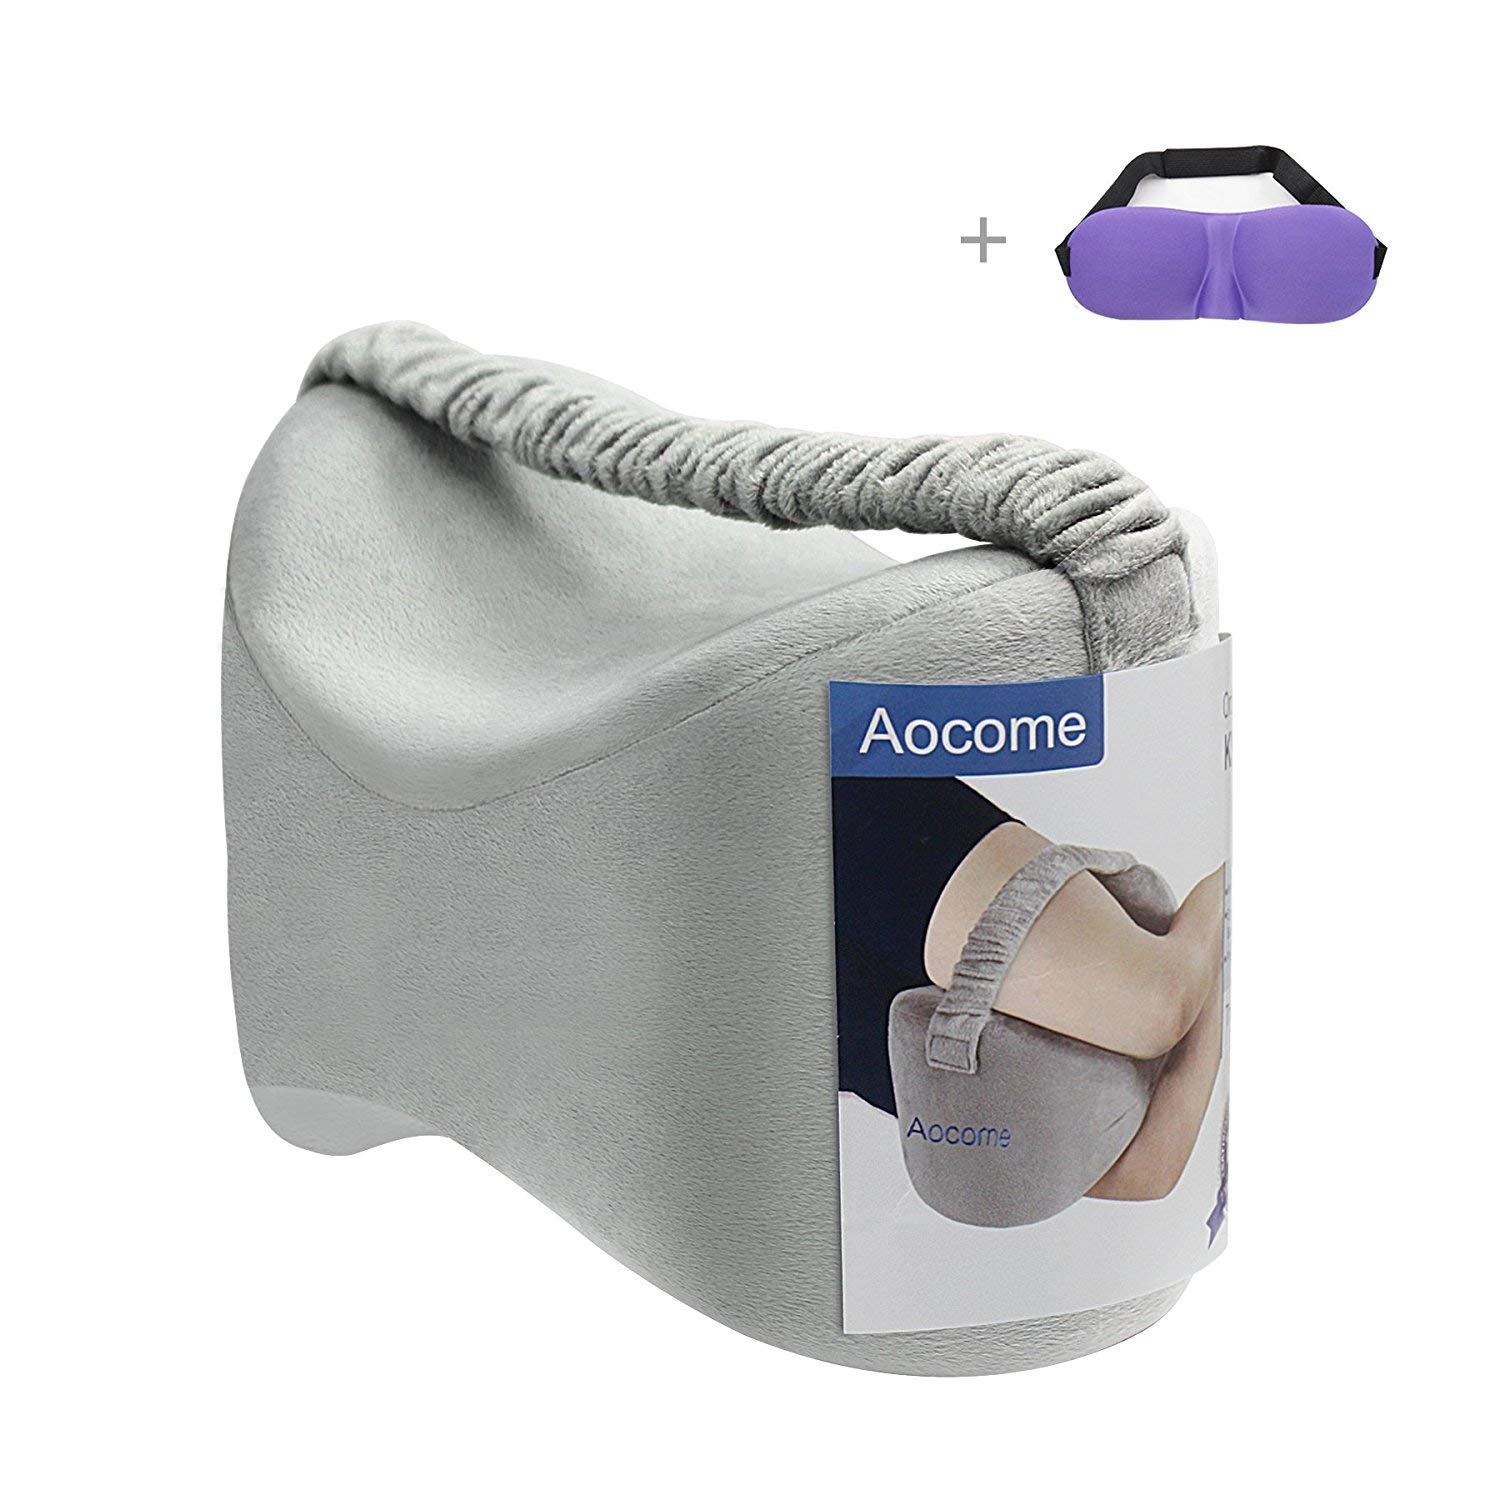 Aocome Knee Pillow for Side Sleepers - Ergonomically Designed for back pain,Sciatic Nerve Pain Relief,Leg Pain, Pregnancy, Hip and Joint Pain - Memory Foam Leg Pillow (Bonus Sleep Mask)